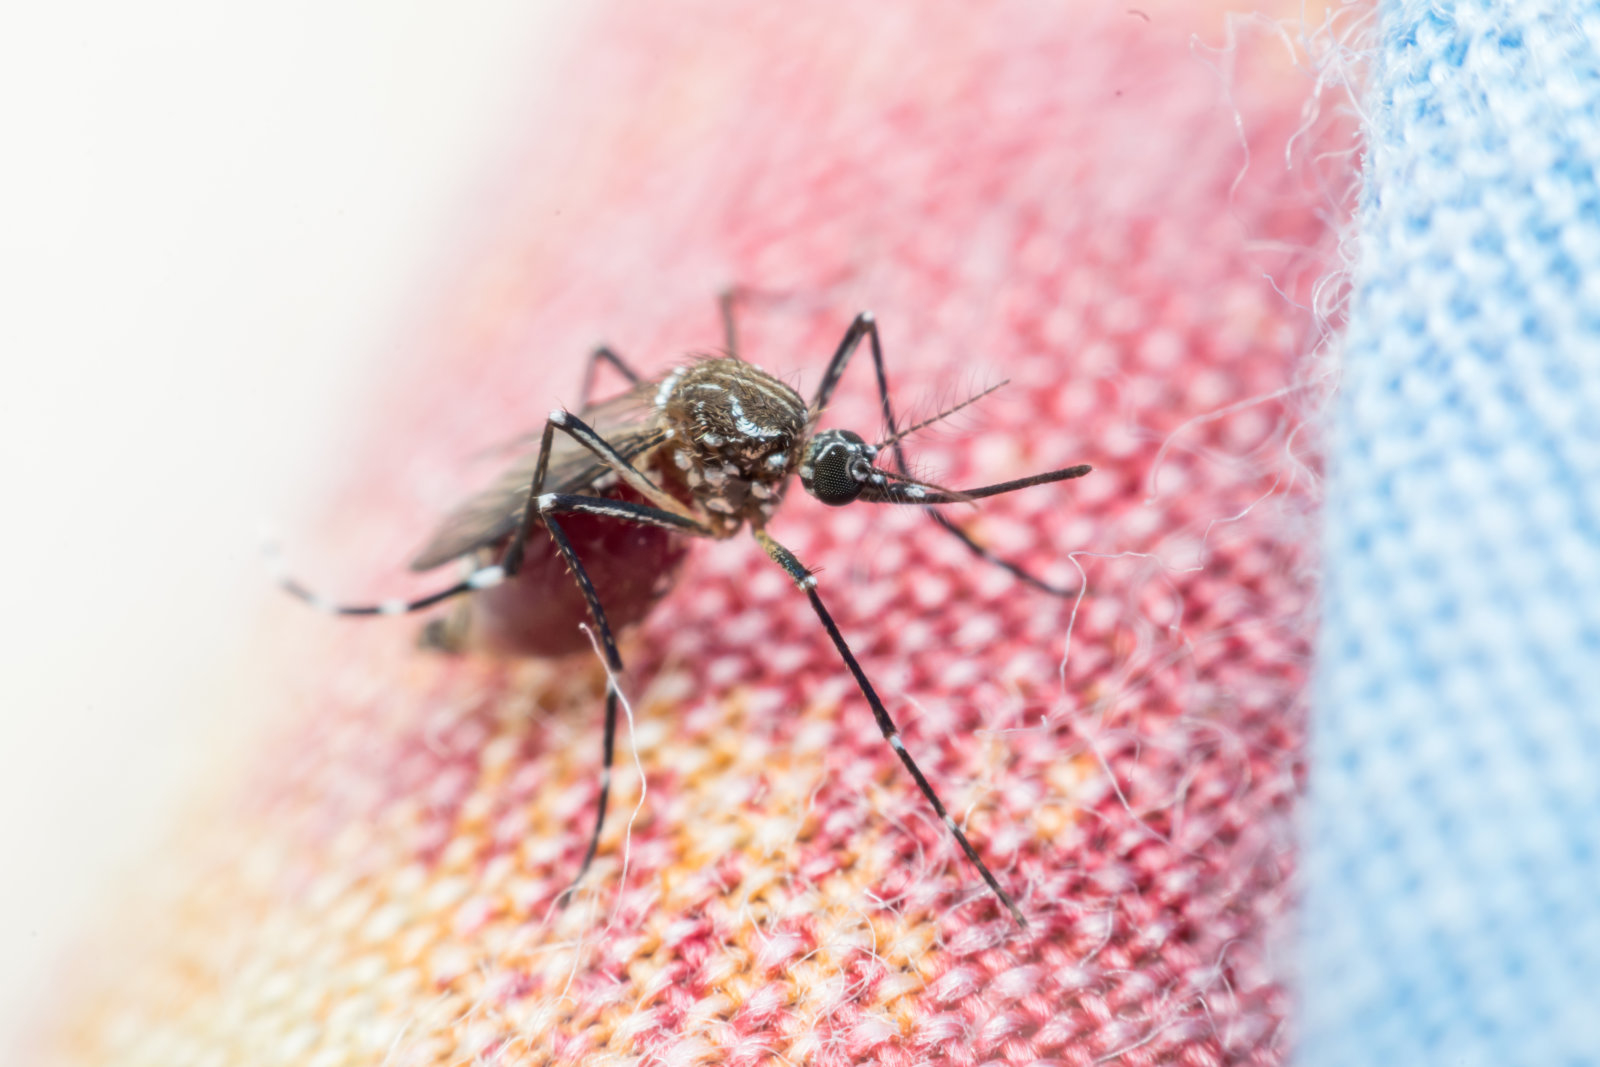 Macro of mosquito (Aedes aegypti) sucking blood close up. Mosquito is carrier of Malaria, Encephalitis, Dengue and Zika virus